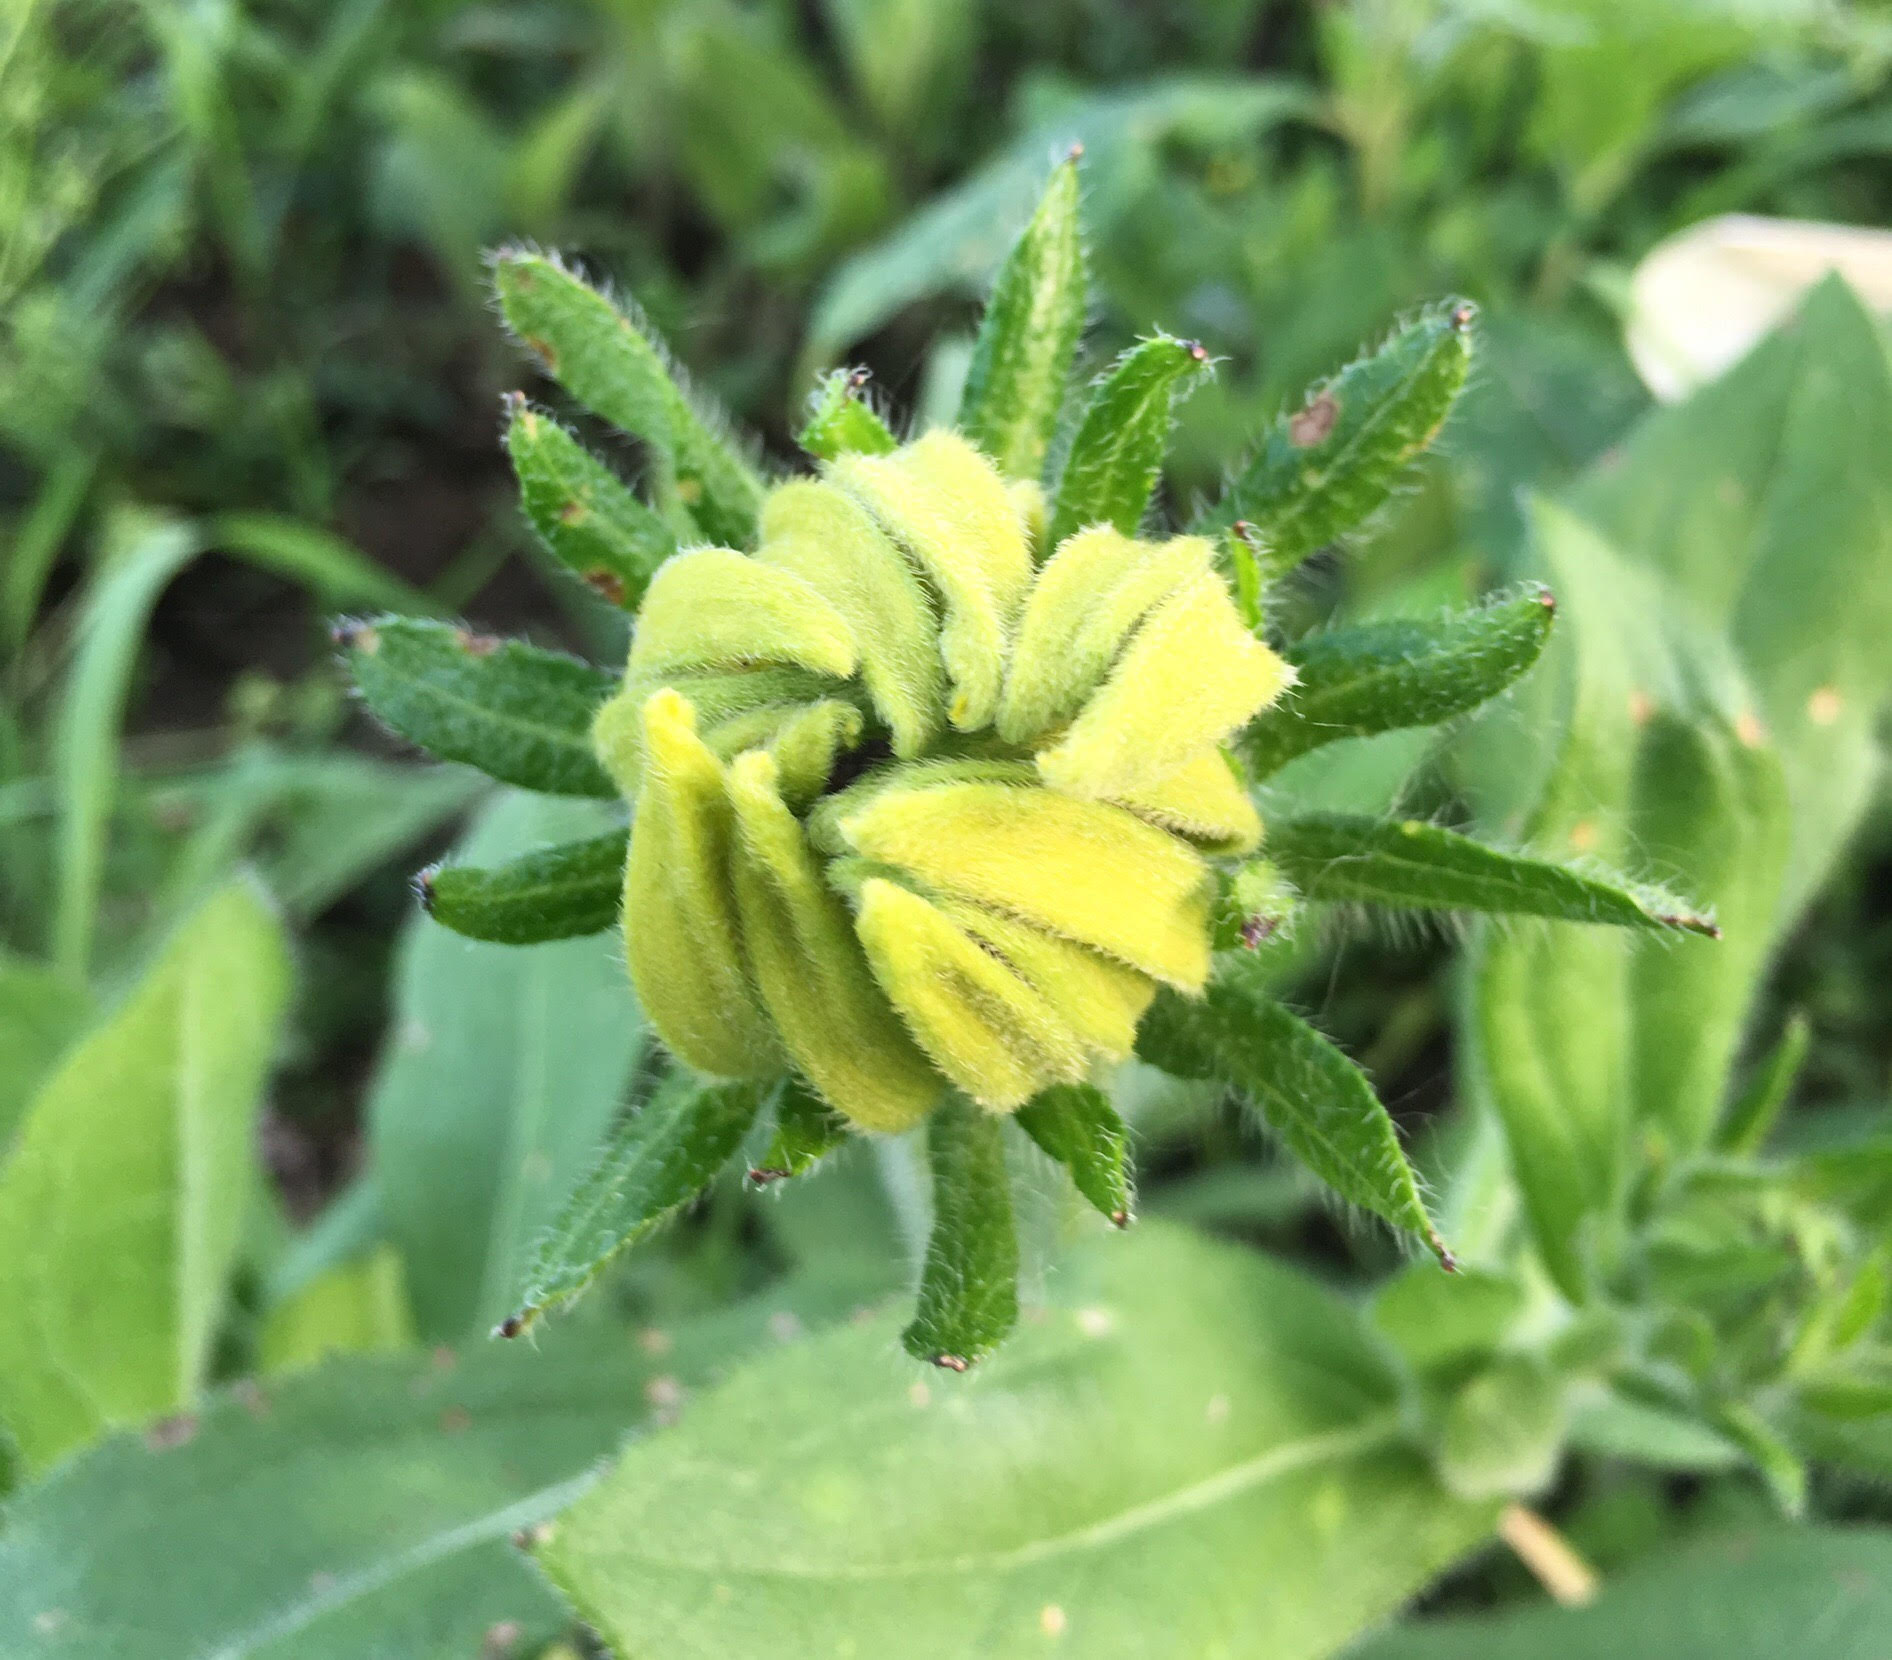 Rudbeckia (black-eyed susans) about to open.